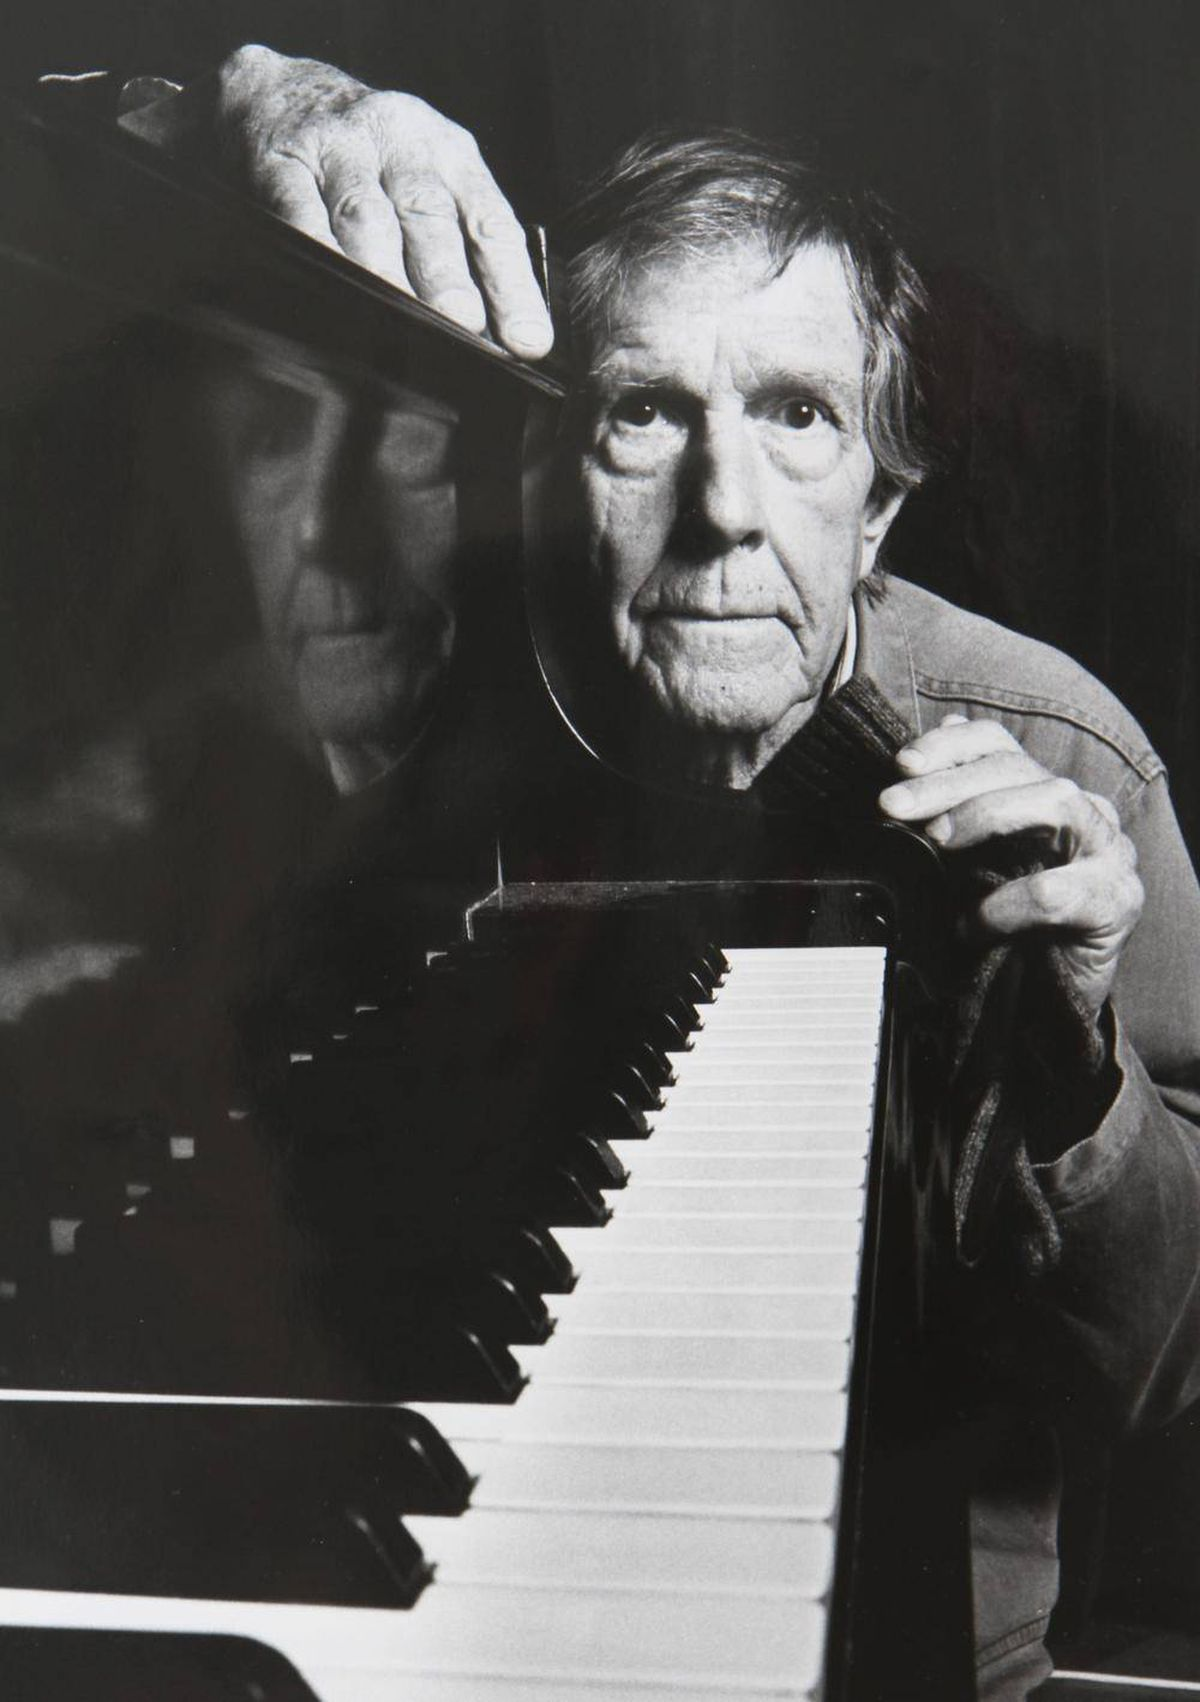 John Cage: Was he a genius or a joker? - The Globe and Mail